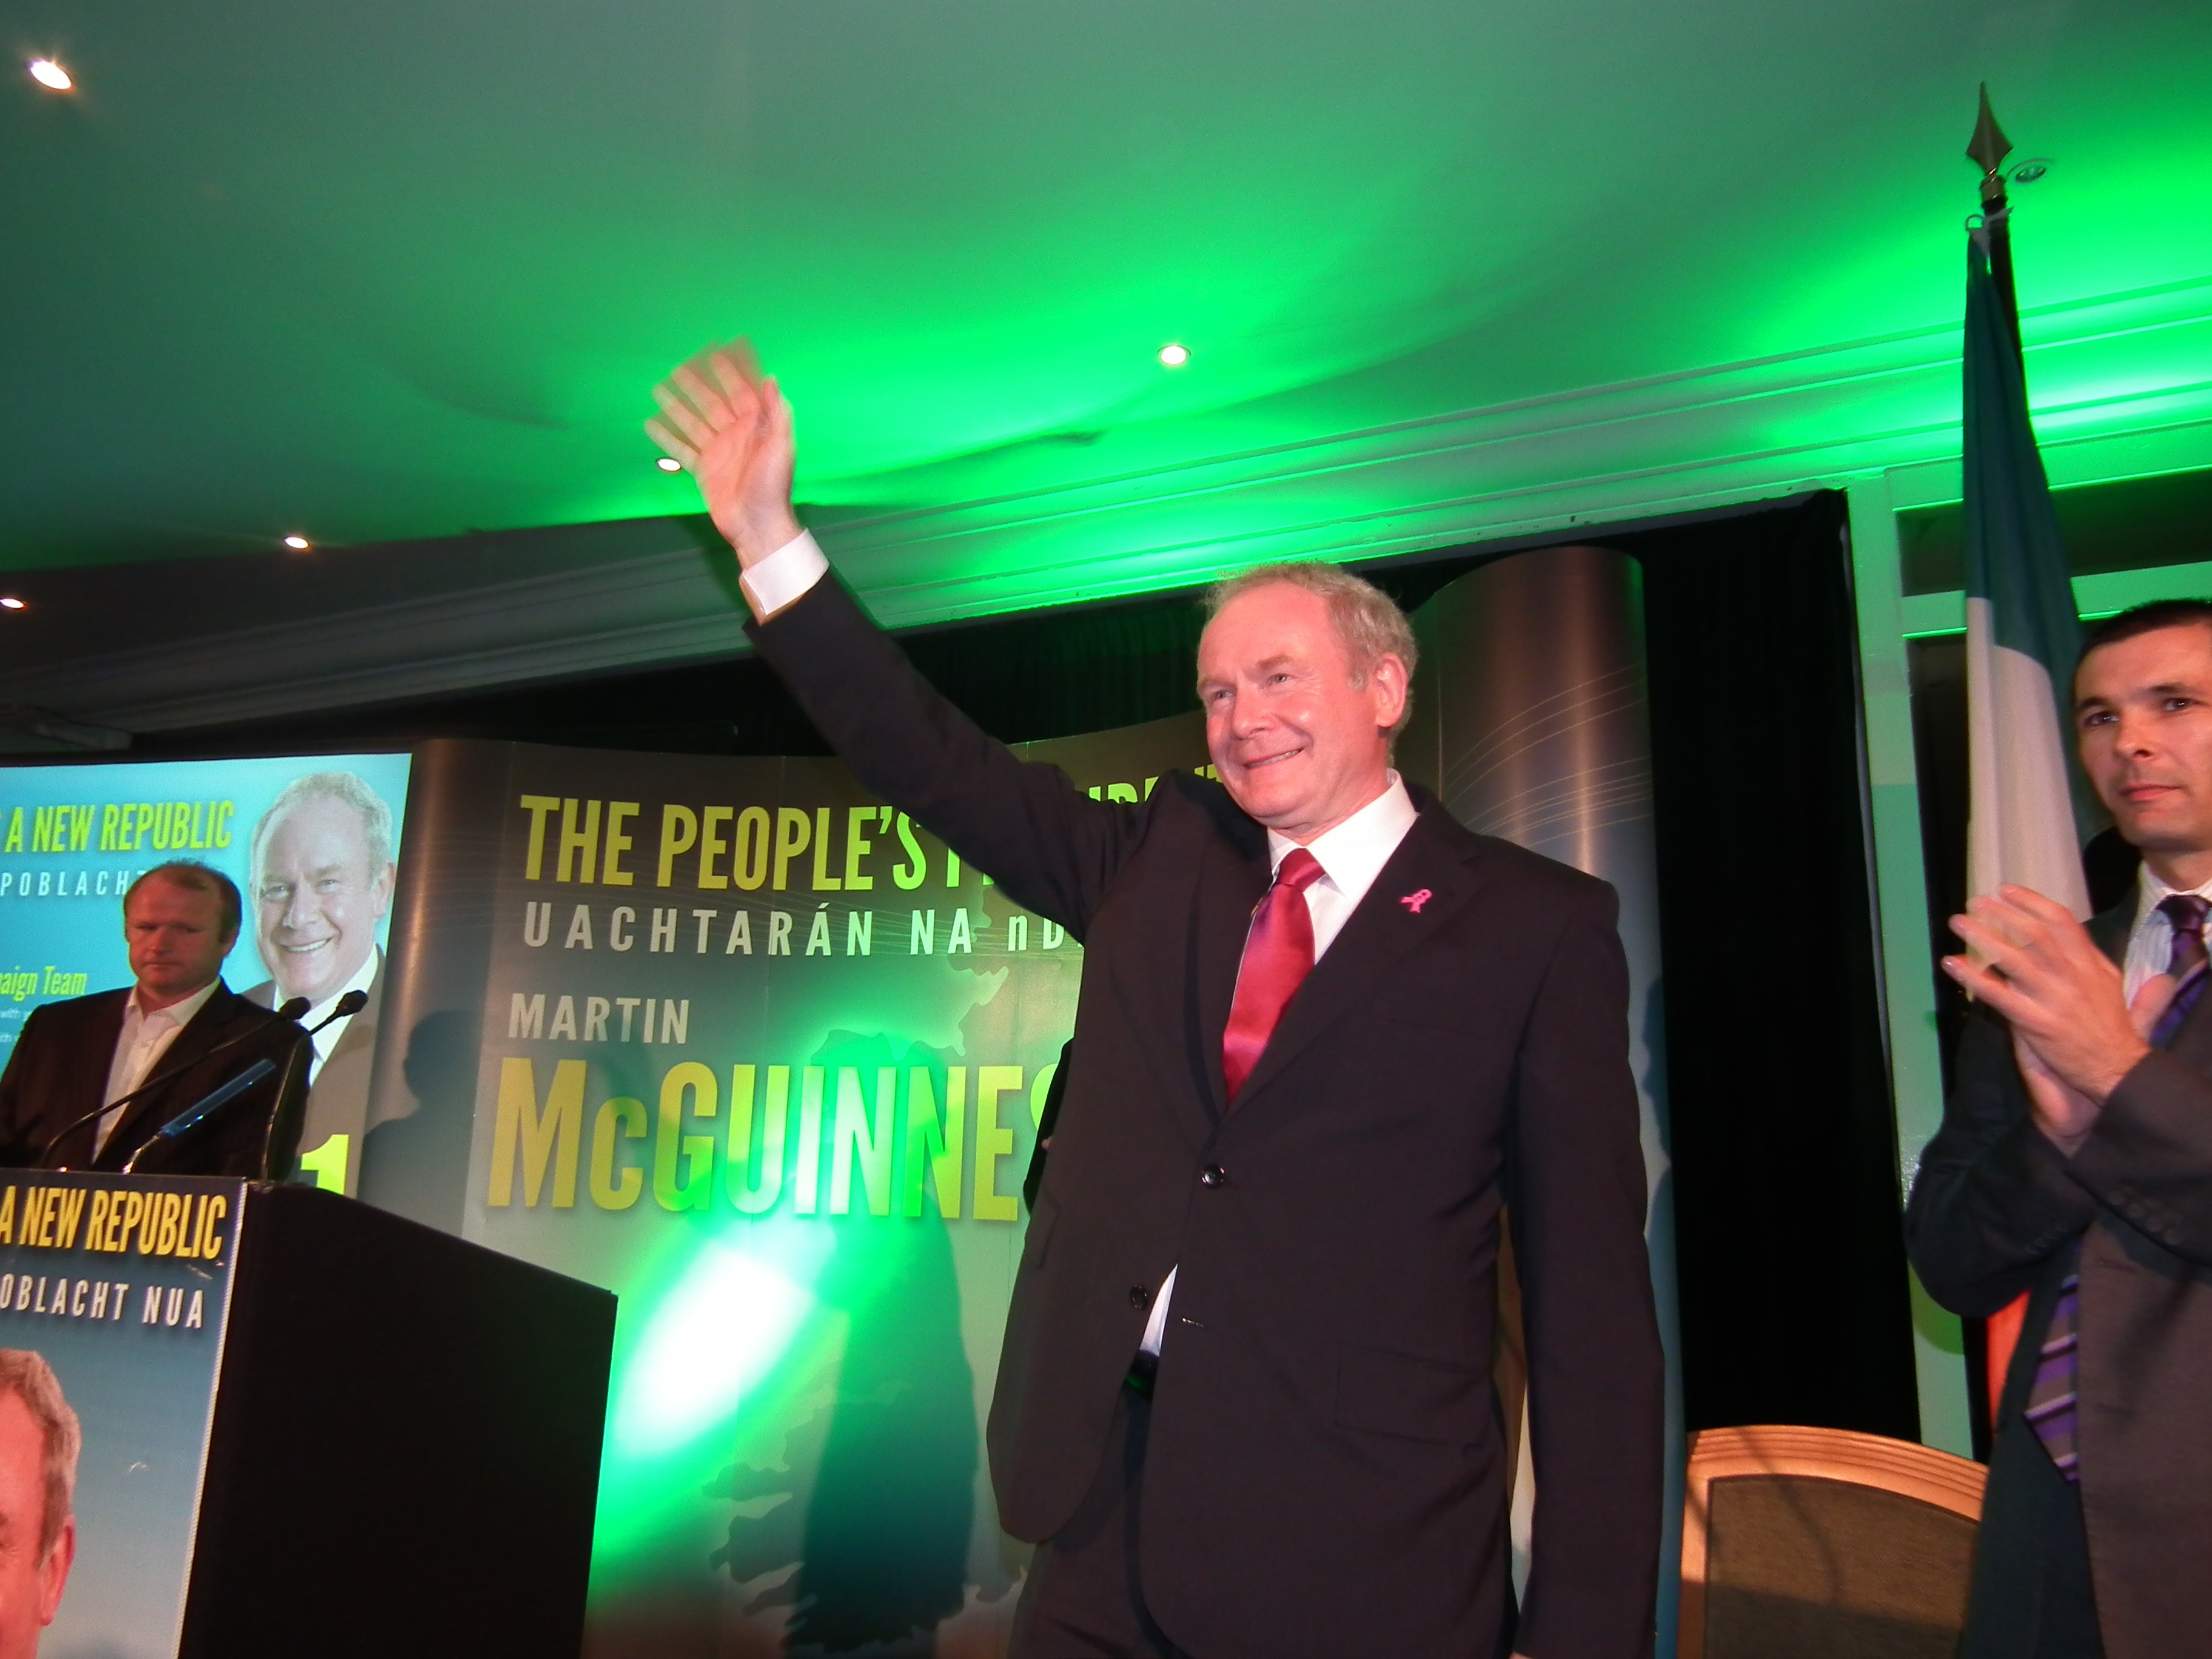 Martin McGuinness during the presidential election campaign.